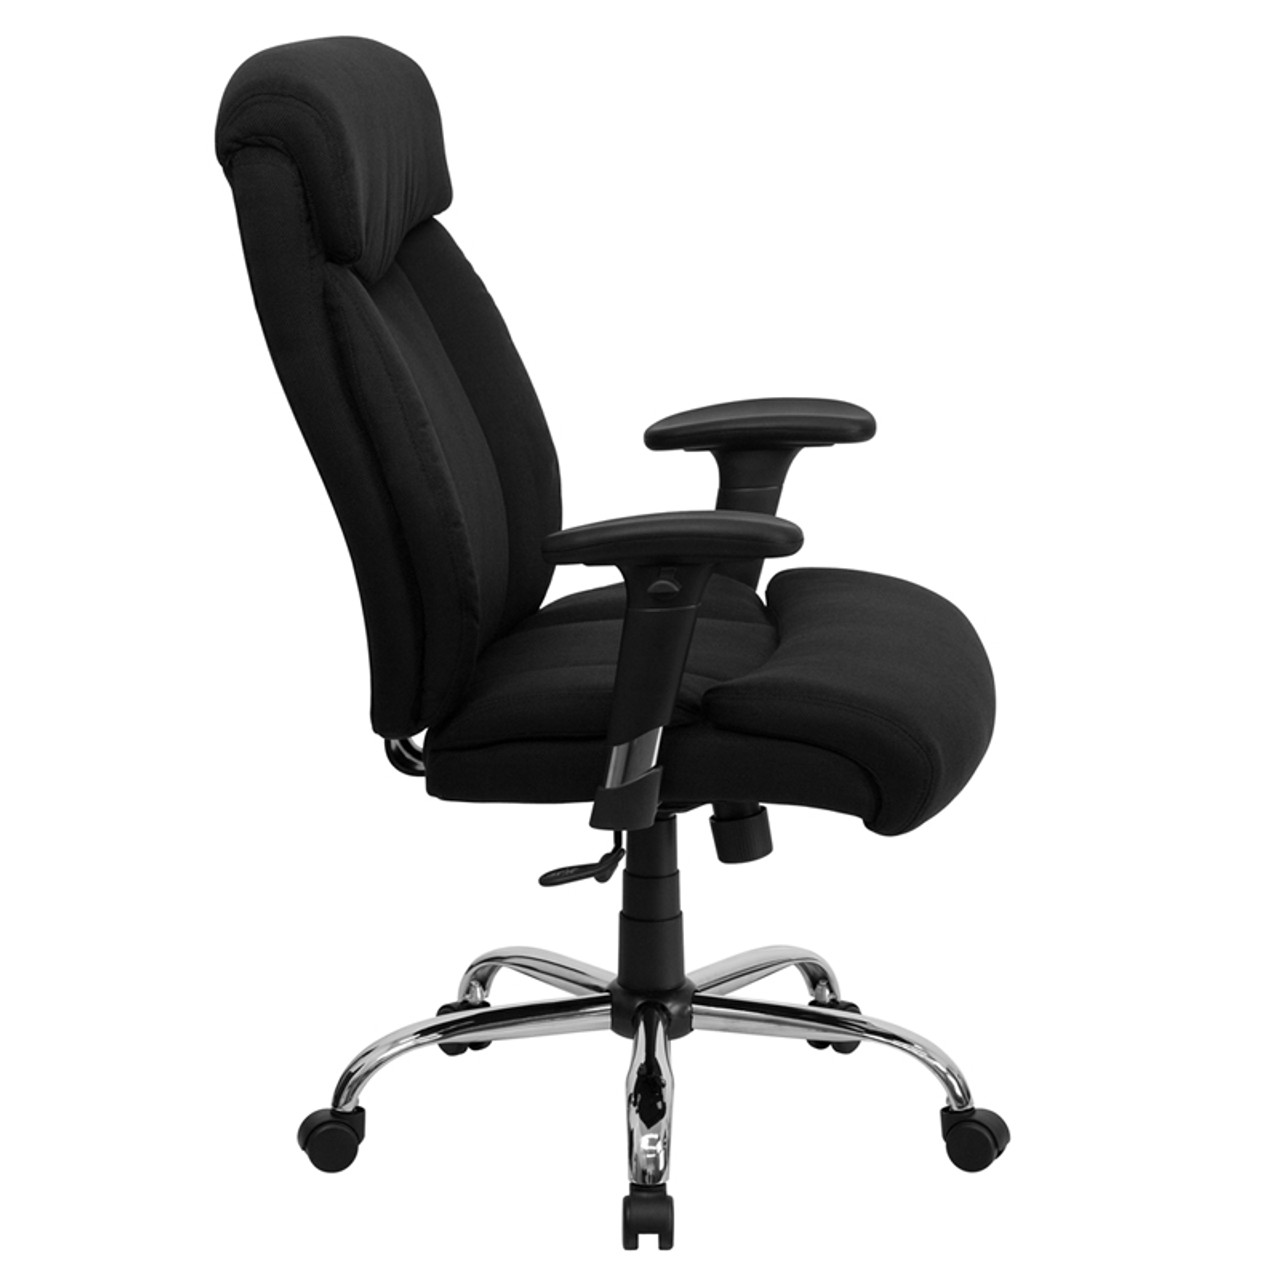 Big Tall 350 Lb Capacity Big Tall Black Fabric Office Chair With Arms Ff 0301 14 Color4office